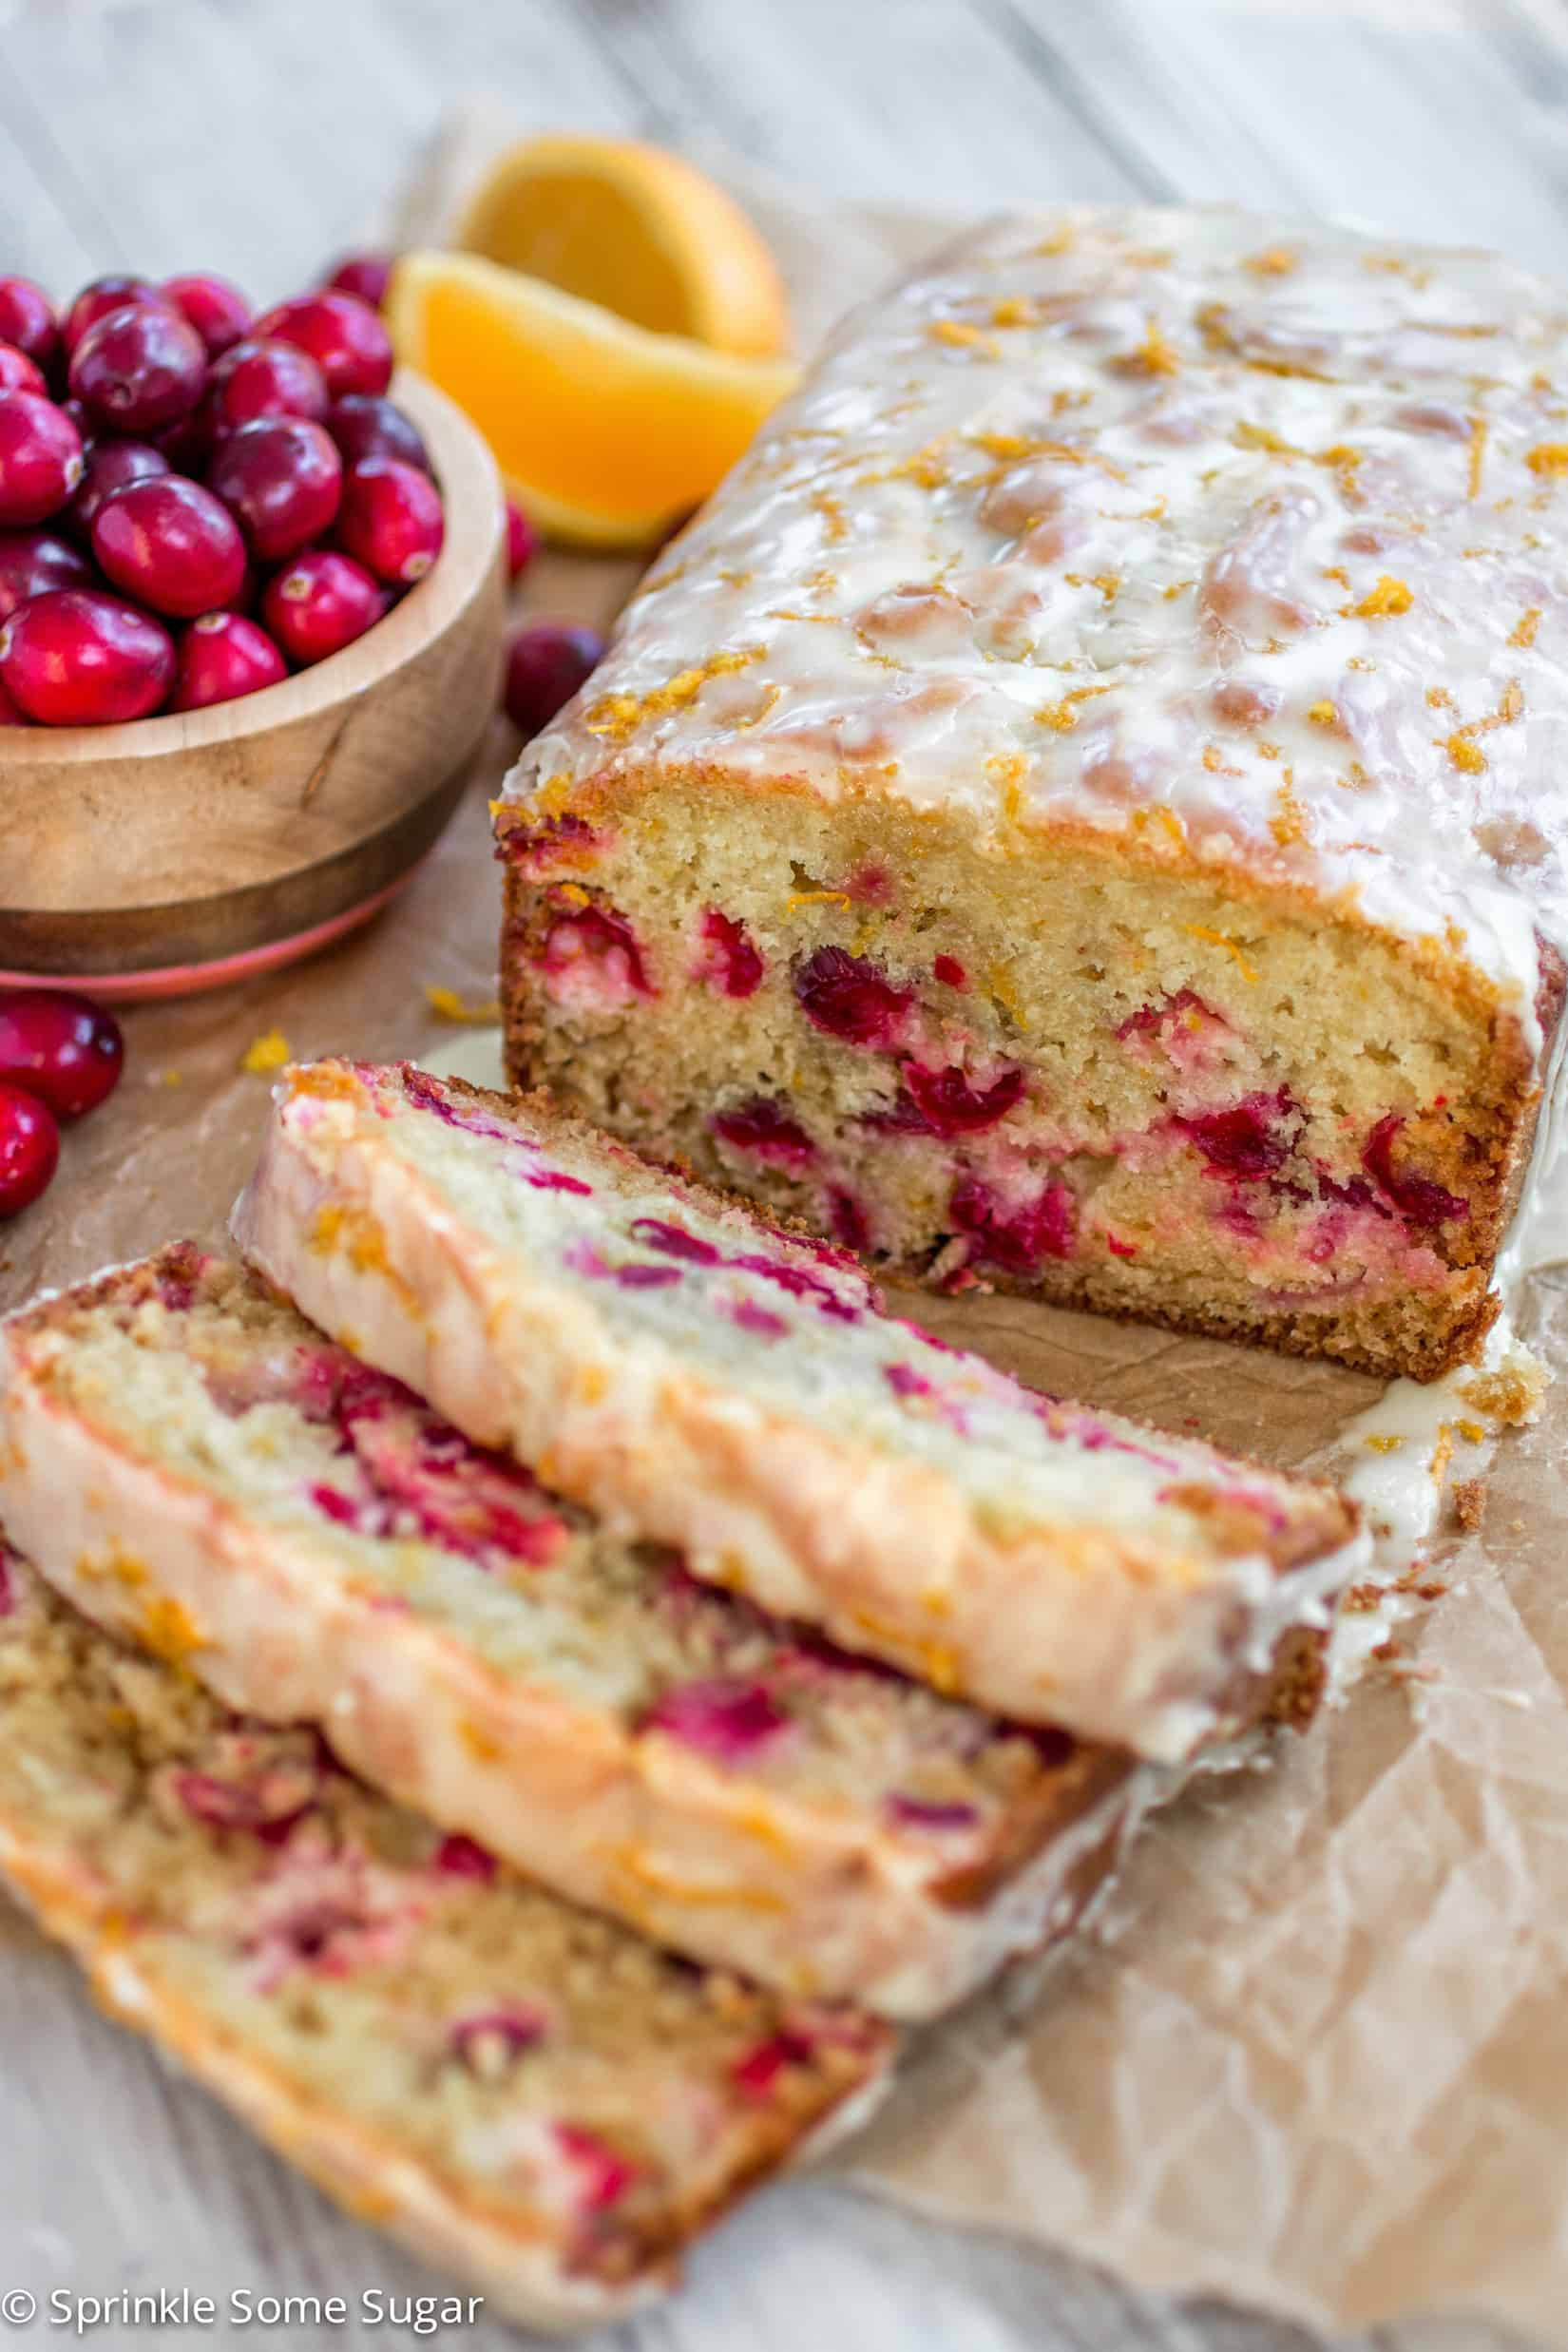 Super moist orange bread studded with juicy cranberries and topped with a sweet, fresh orange glaze. - Sprinkle Some Sugar